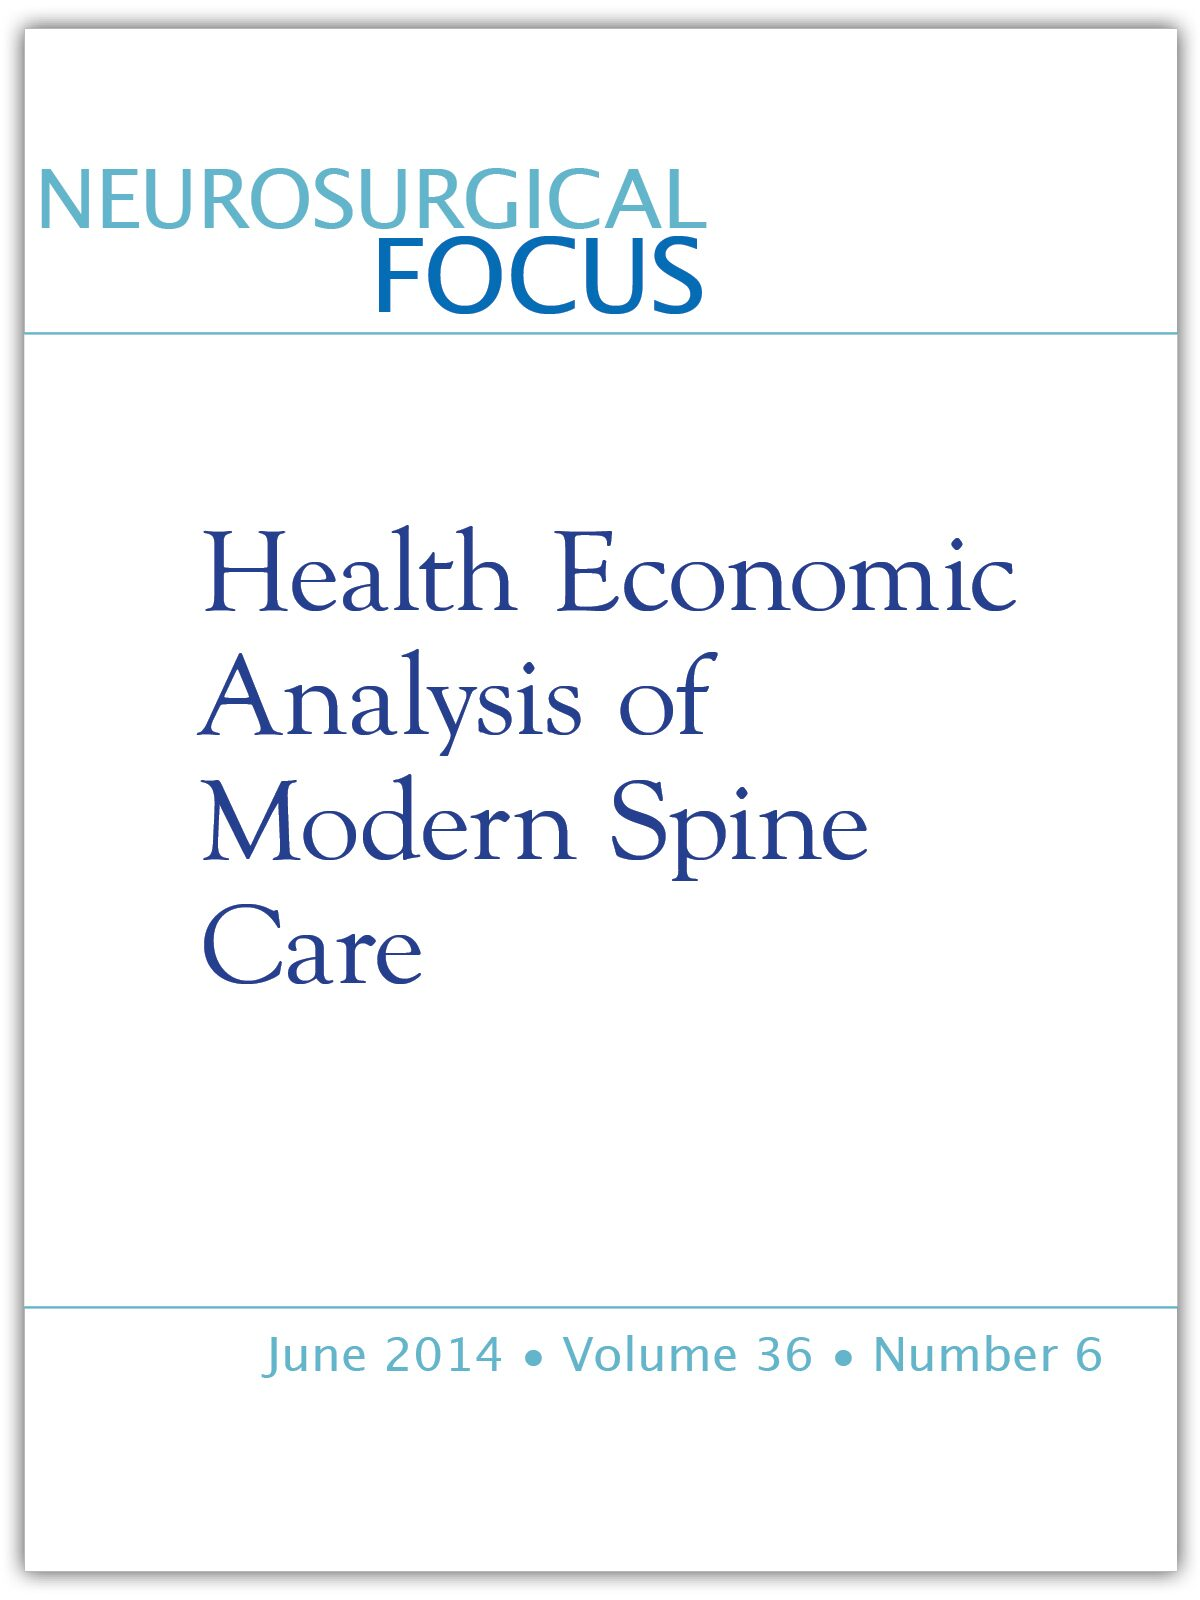 Perioperative Outcomes Complications And Costs Associated With Lumbar Spinal Fusion In Older Patients With Spinal Stenosis And Spondylolisthesis In Neurosurgical Focus Volume 36 Issue 6 2014